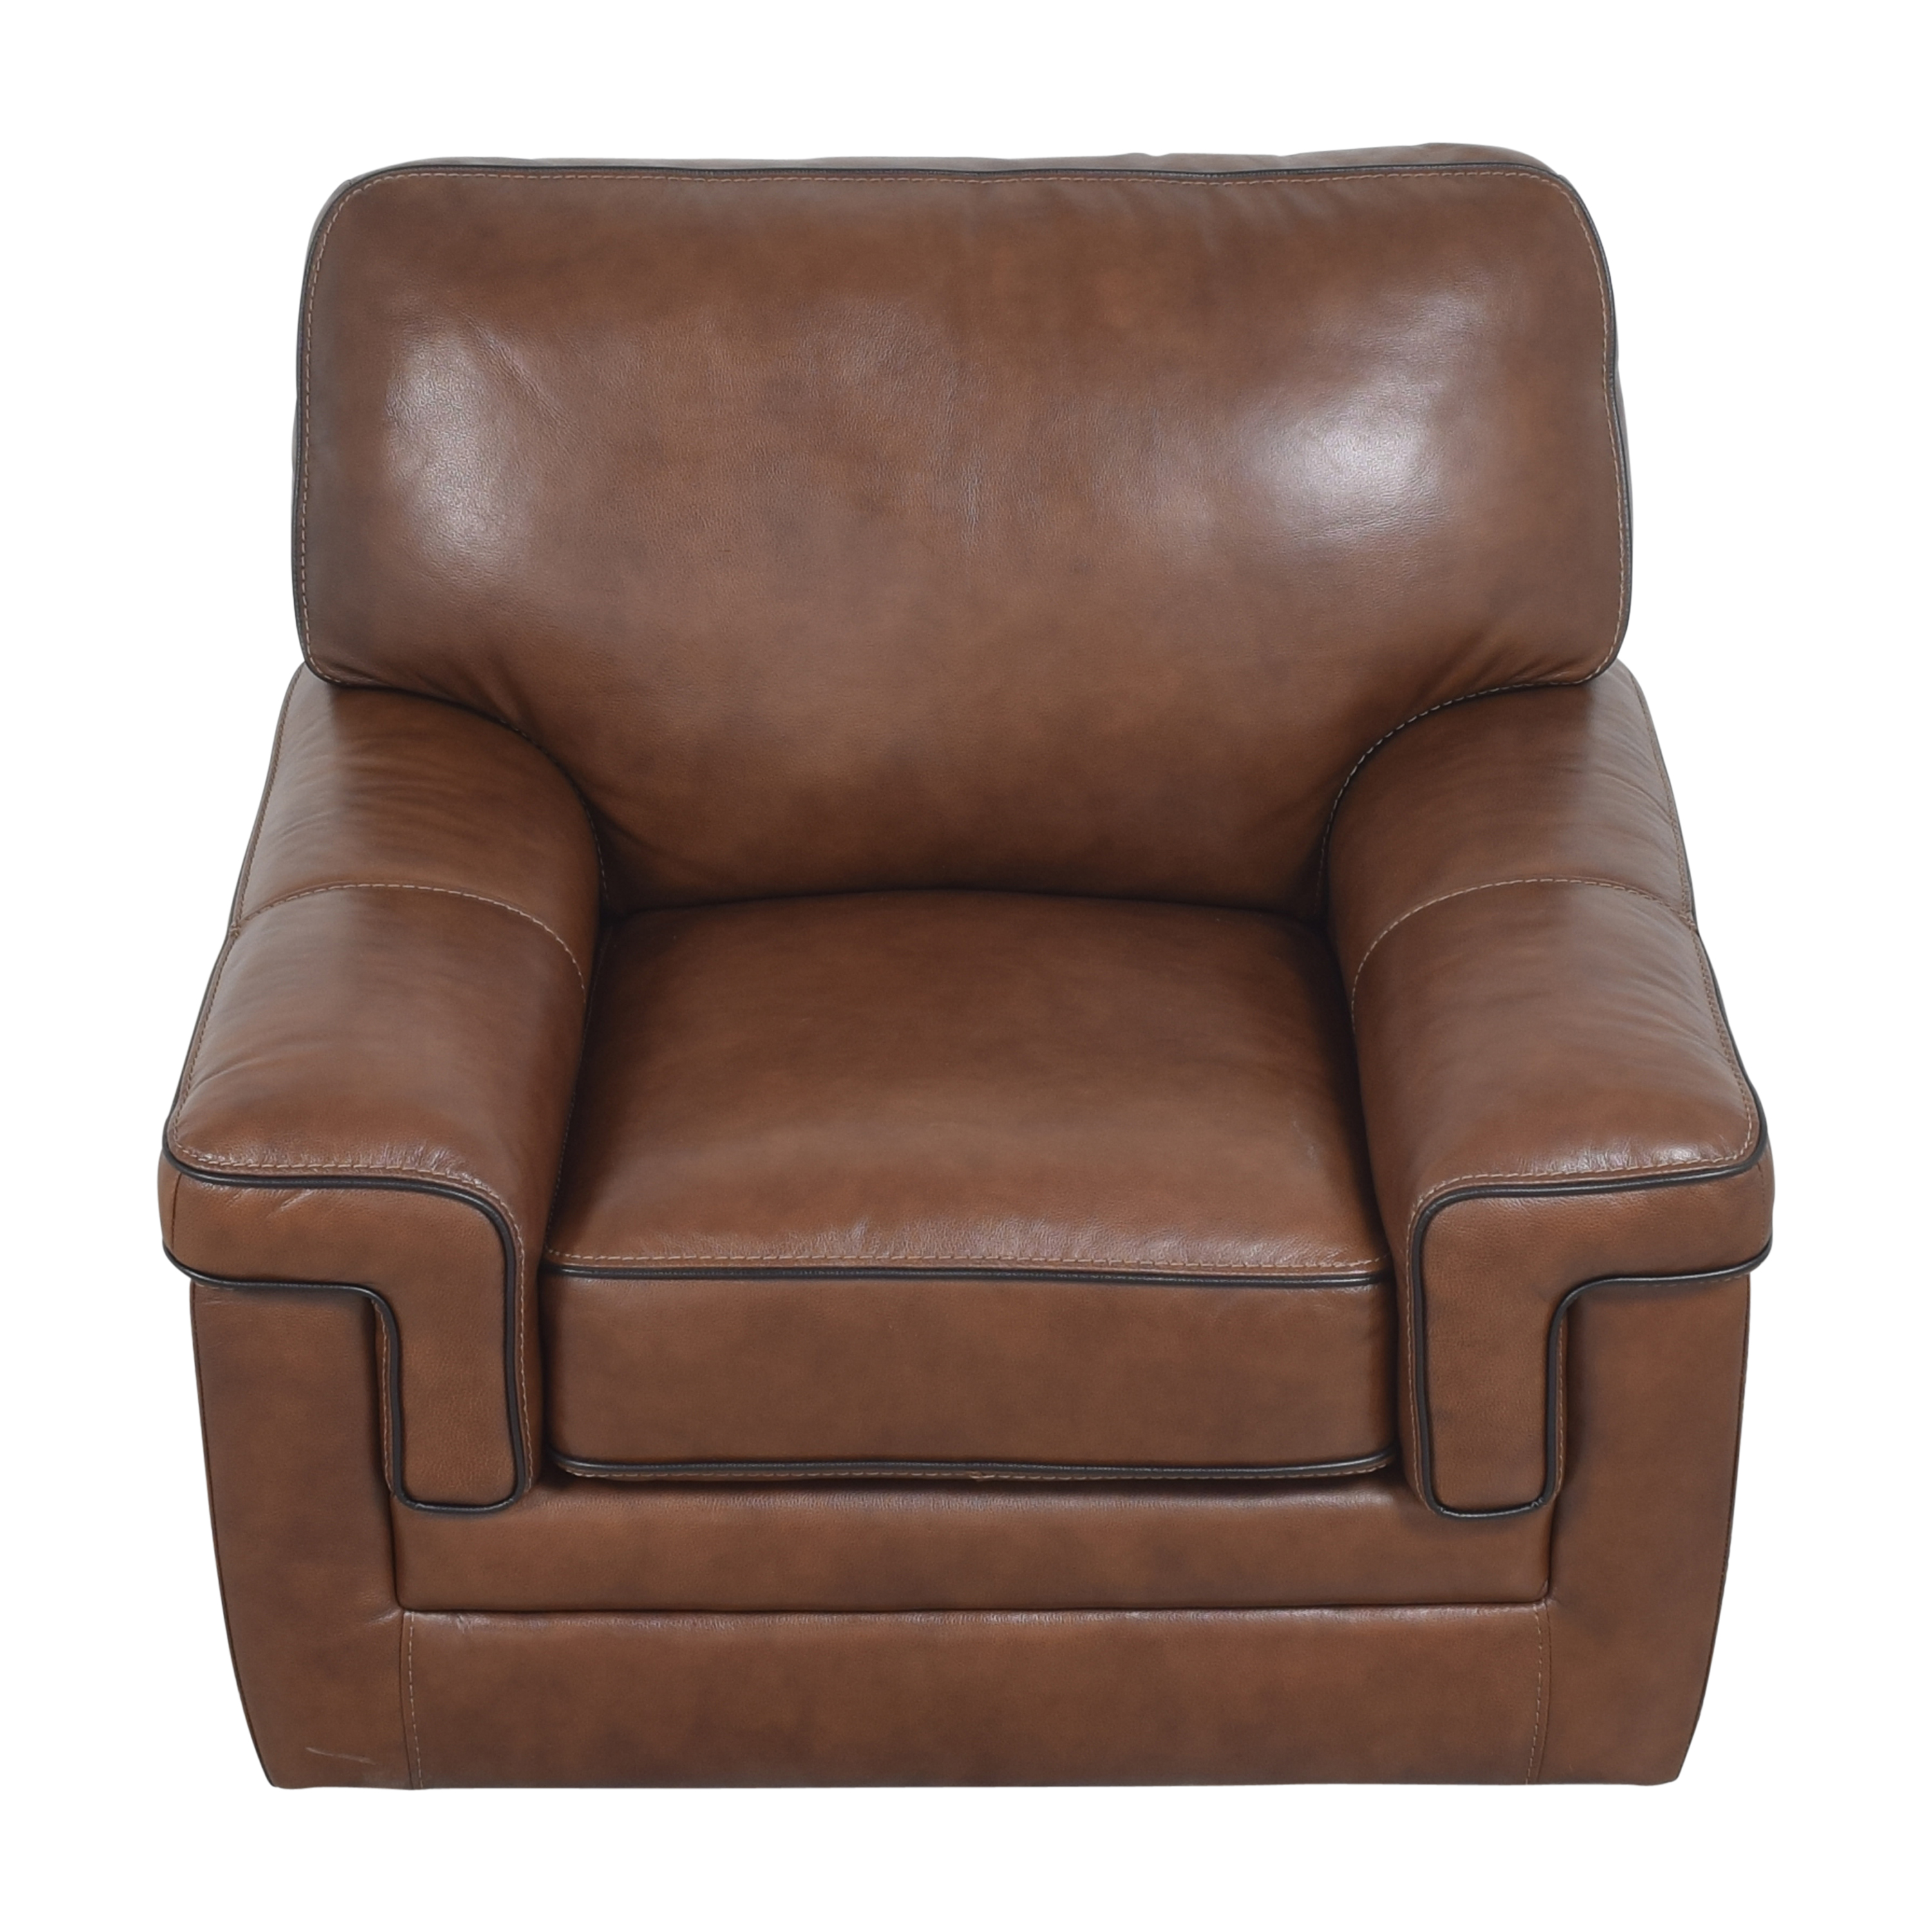 Raymour & Flanigan Raymour & Flanigan Colton Swivel Chair price